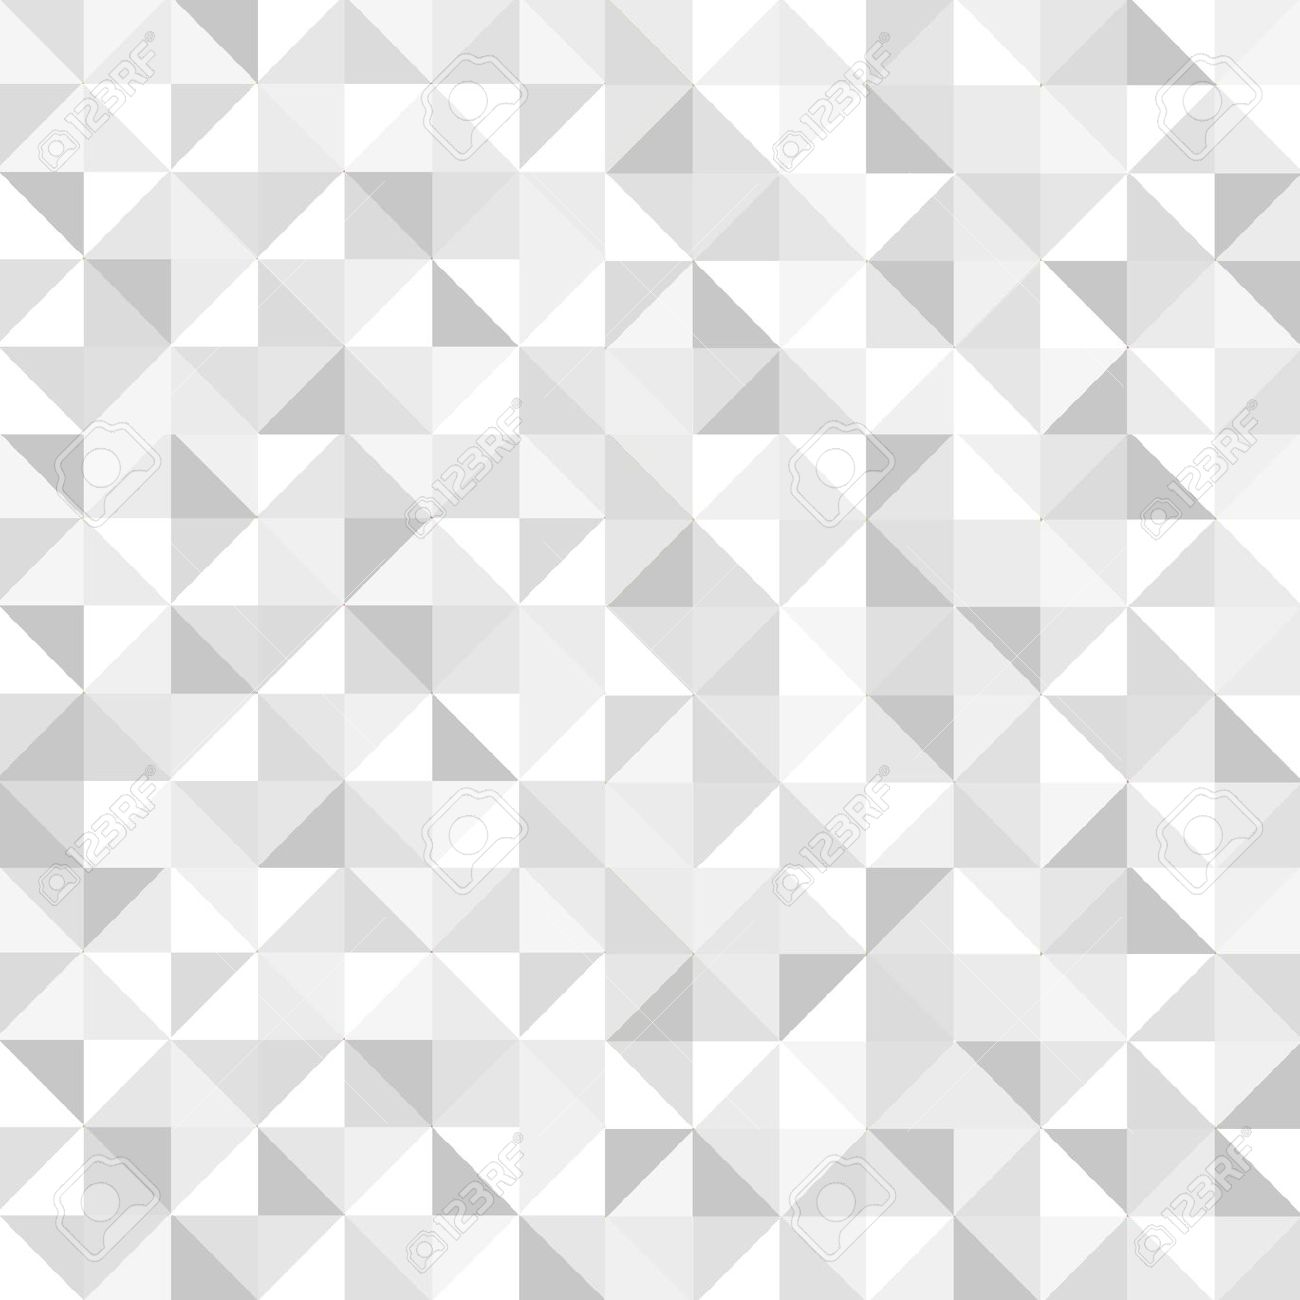 White Geometric Wallpaper